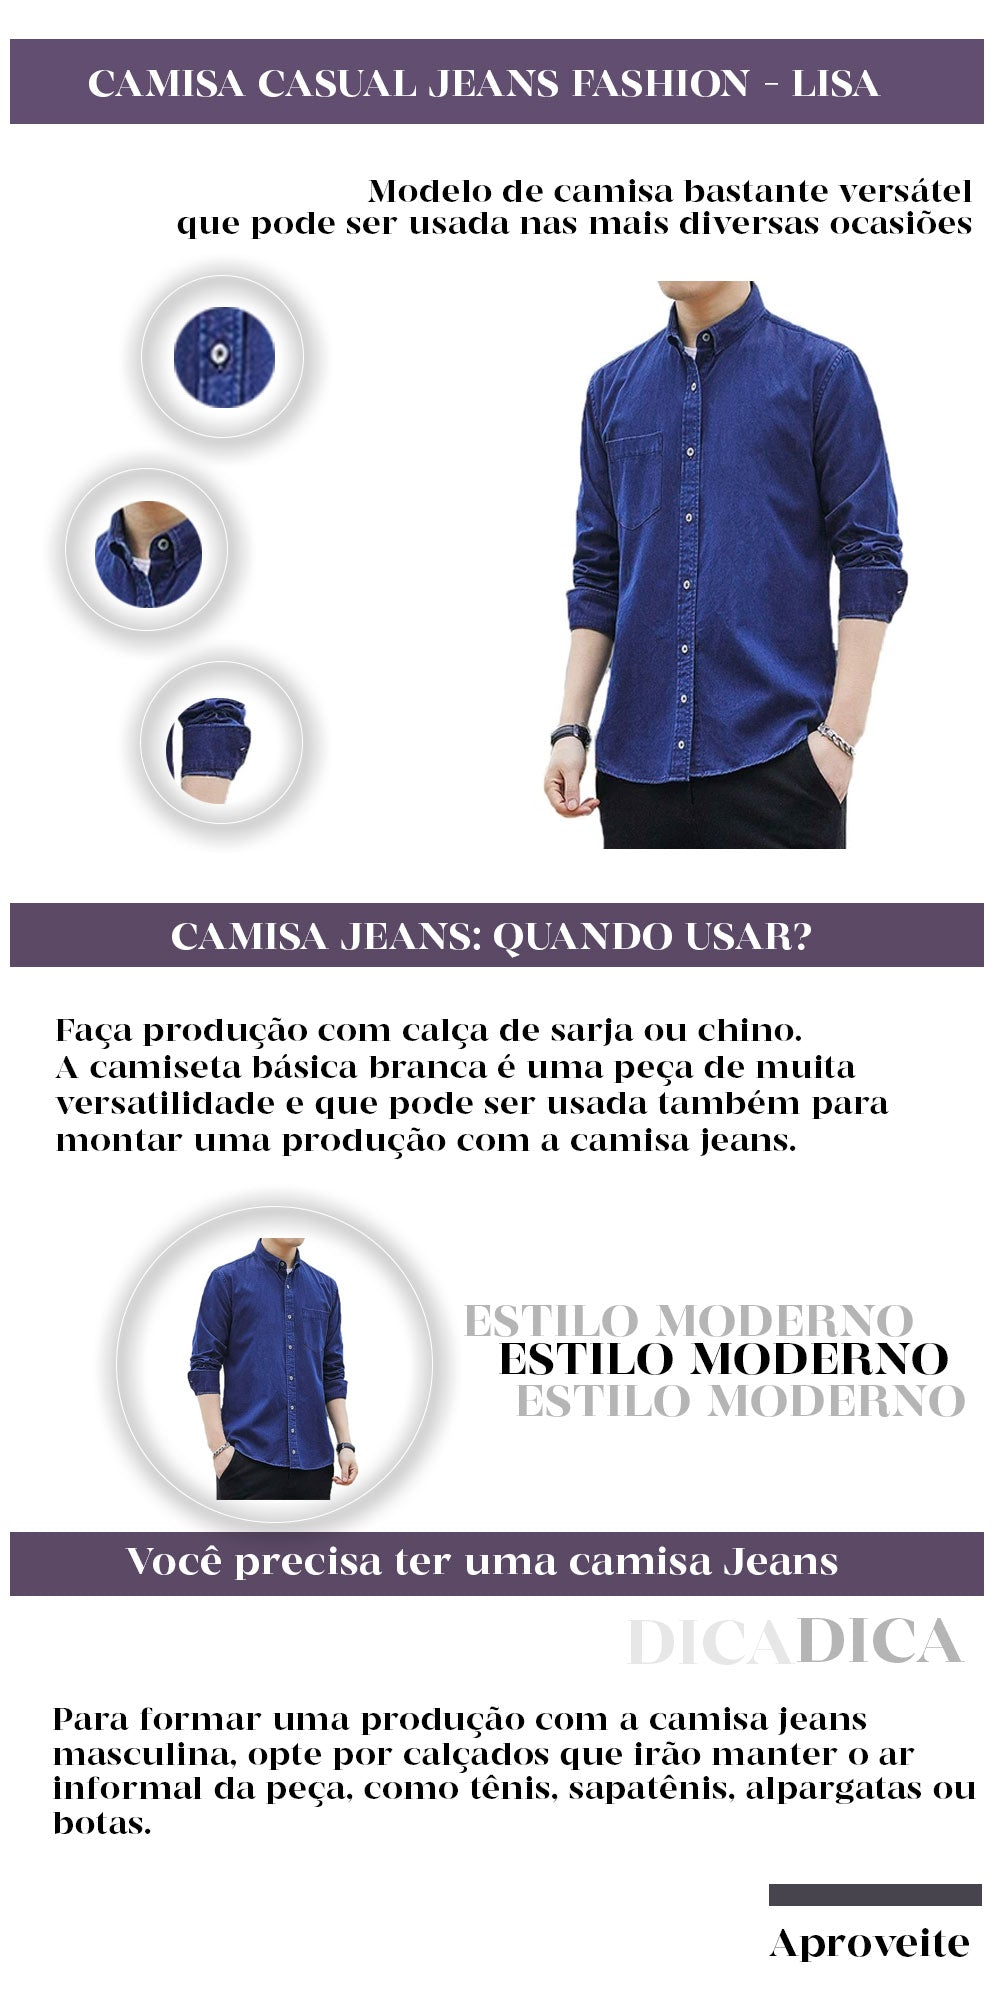 CAMISA CASUAL JEANS FASHION - LISA